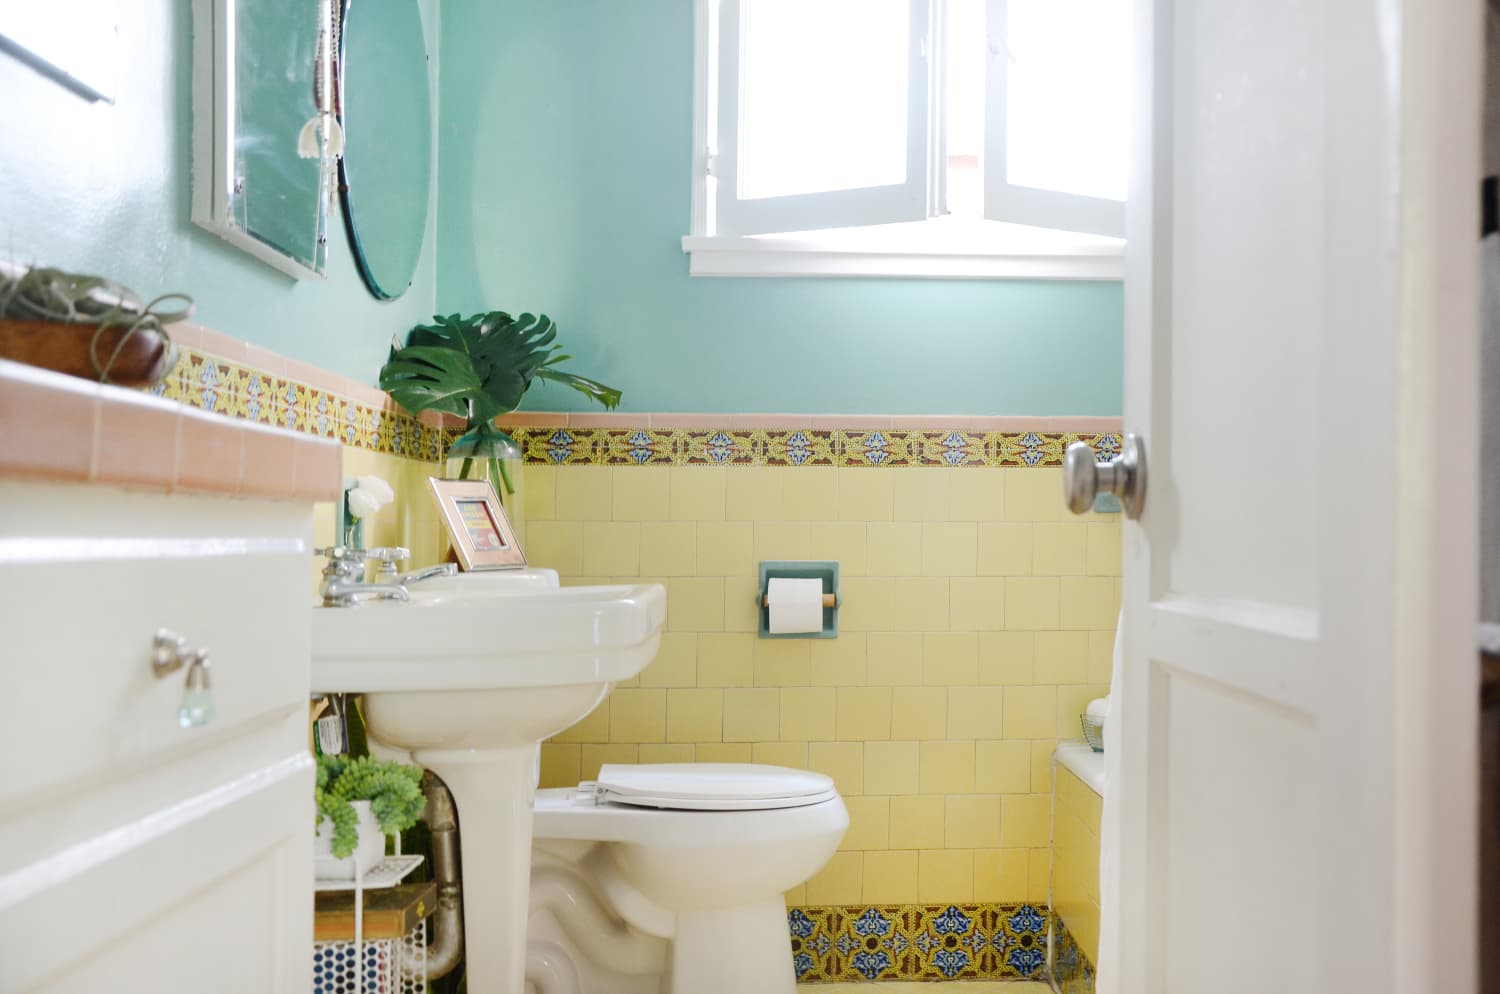 There's One Easy Bathroom Habit That Can Help Prevent the Spread of Coronavirus